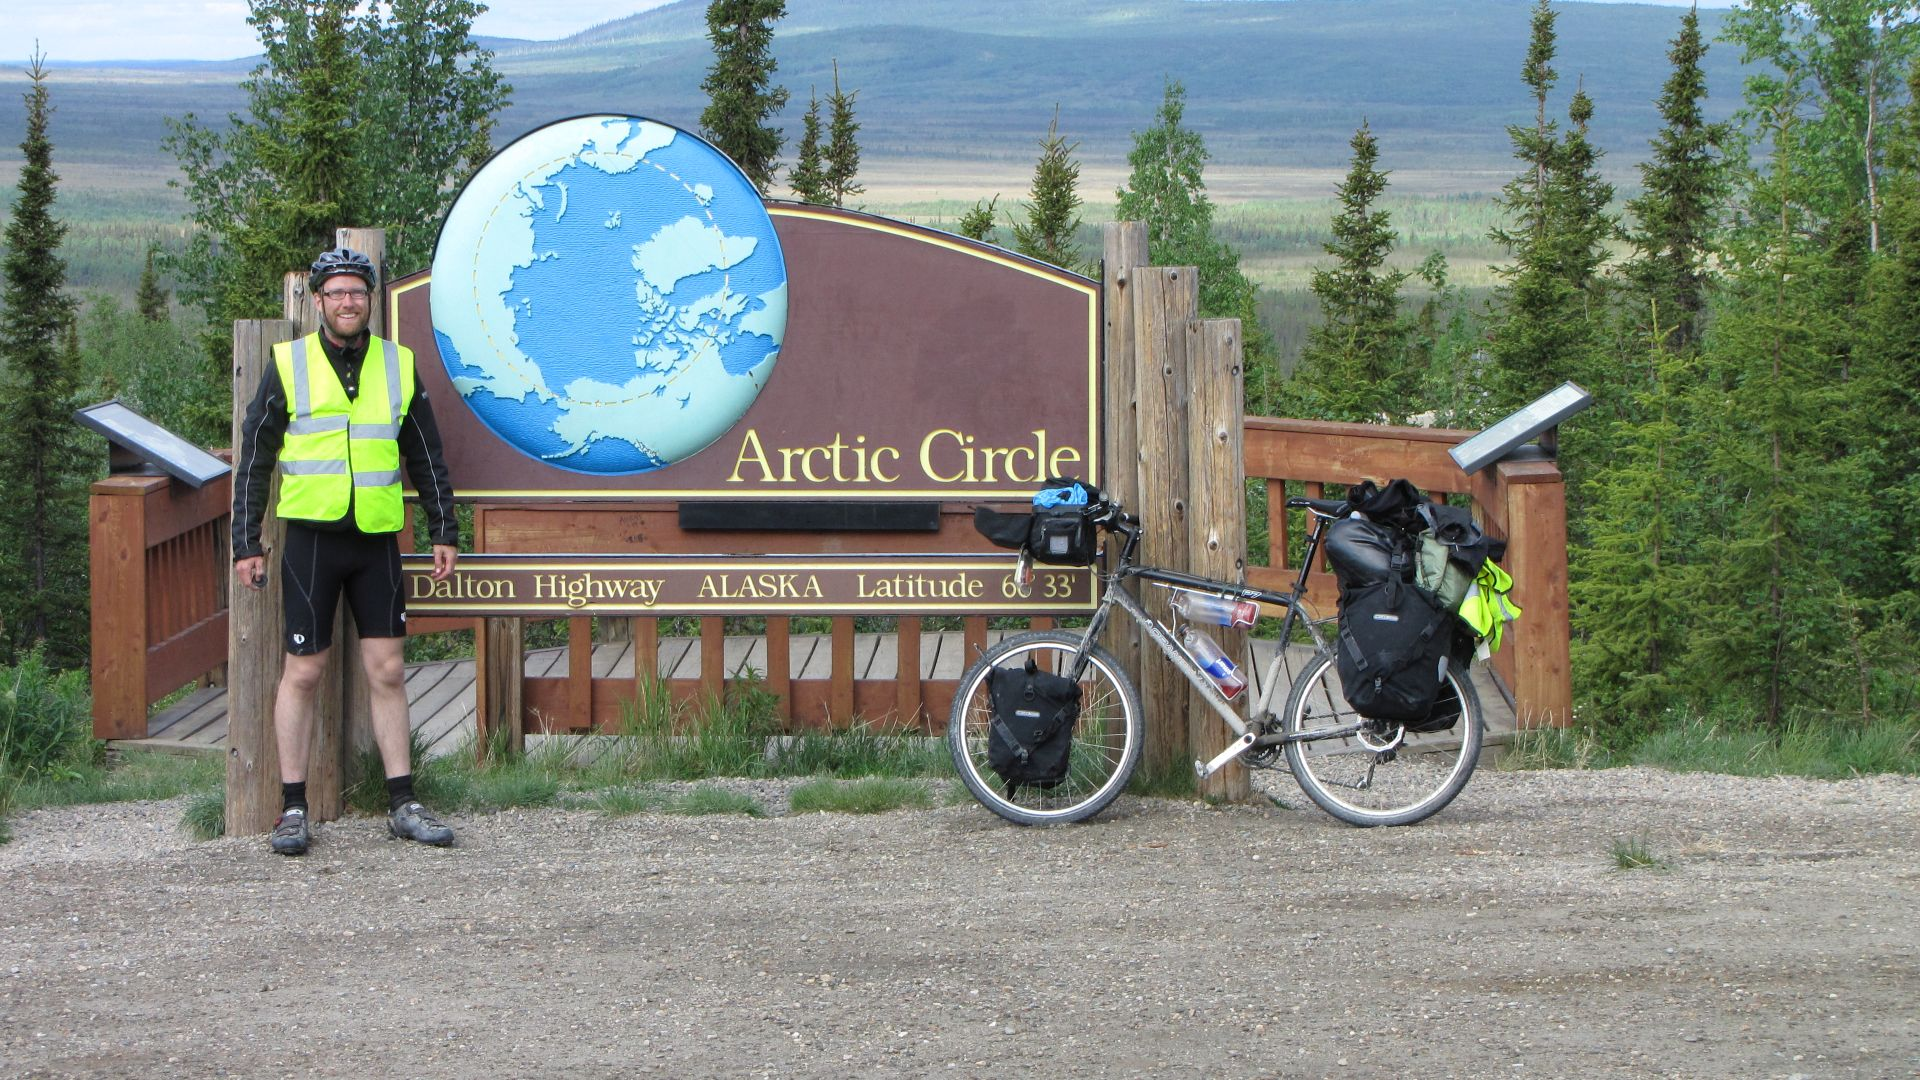 Arctic Circle - took 9 days to get here FROM THE NORTH!